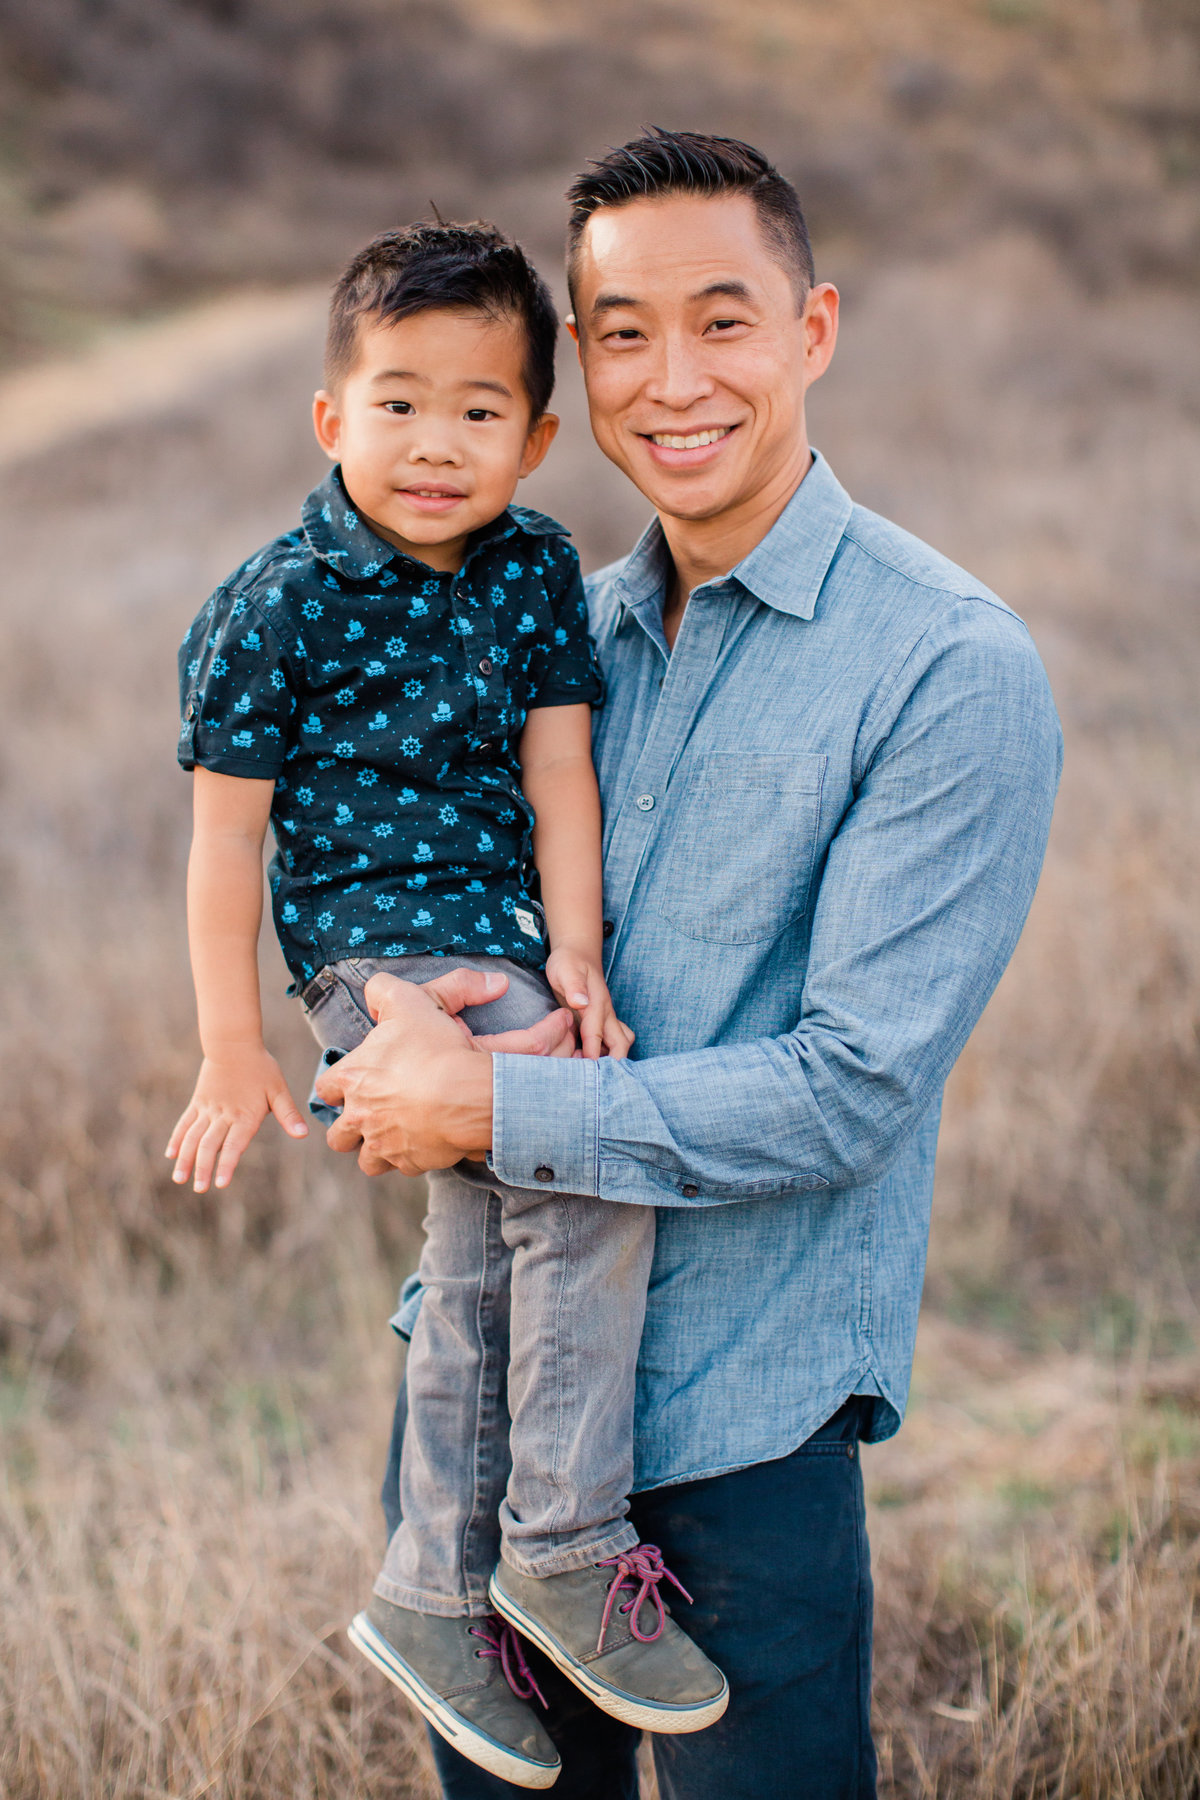 The Wong Family 2018 | Redlands Family Photographer | Katie Schoepflin Photography39